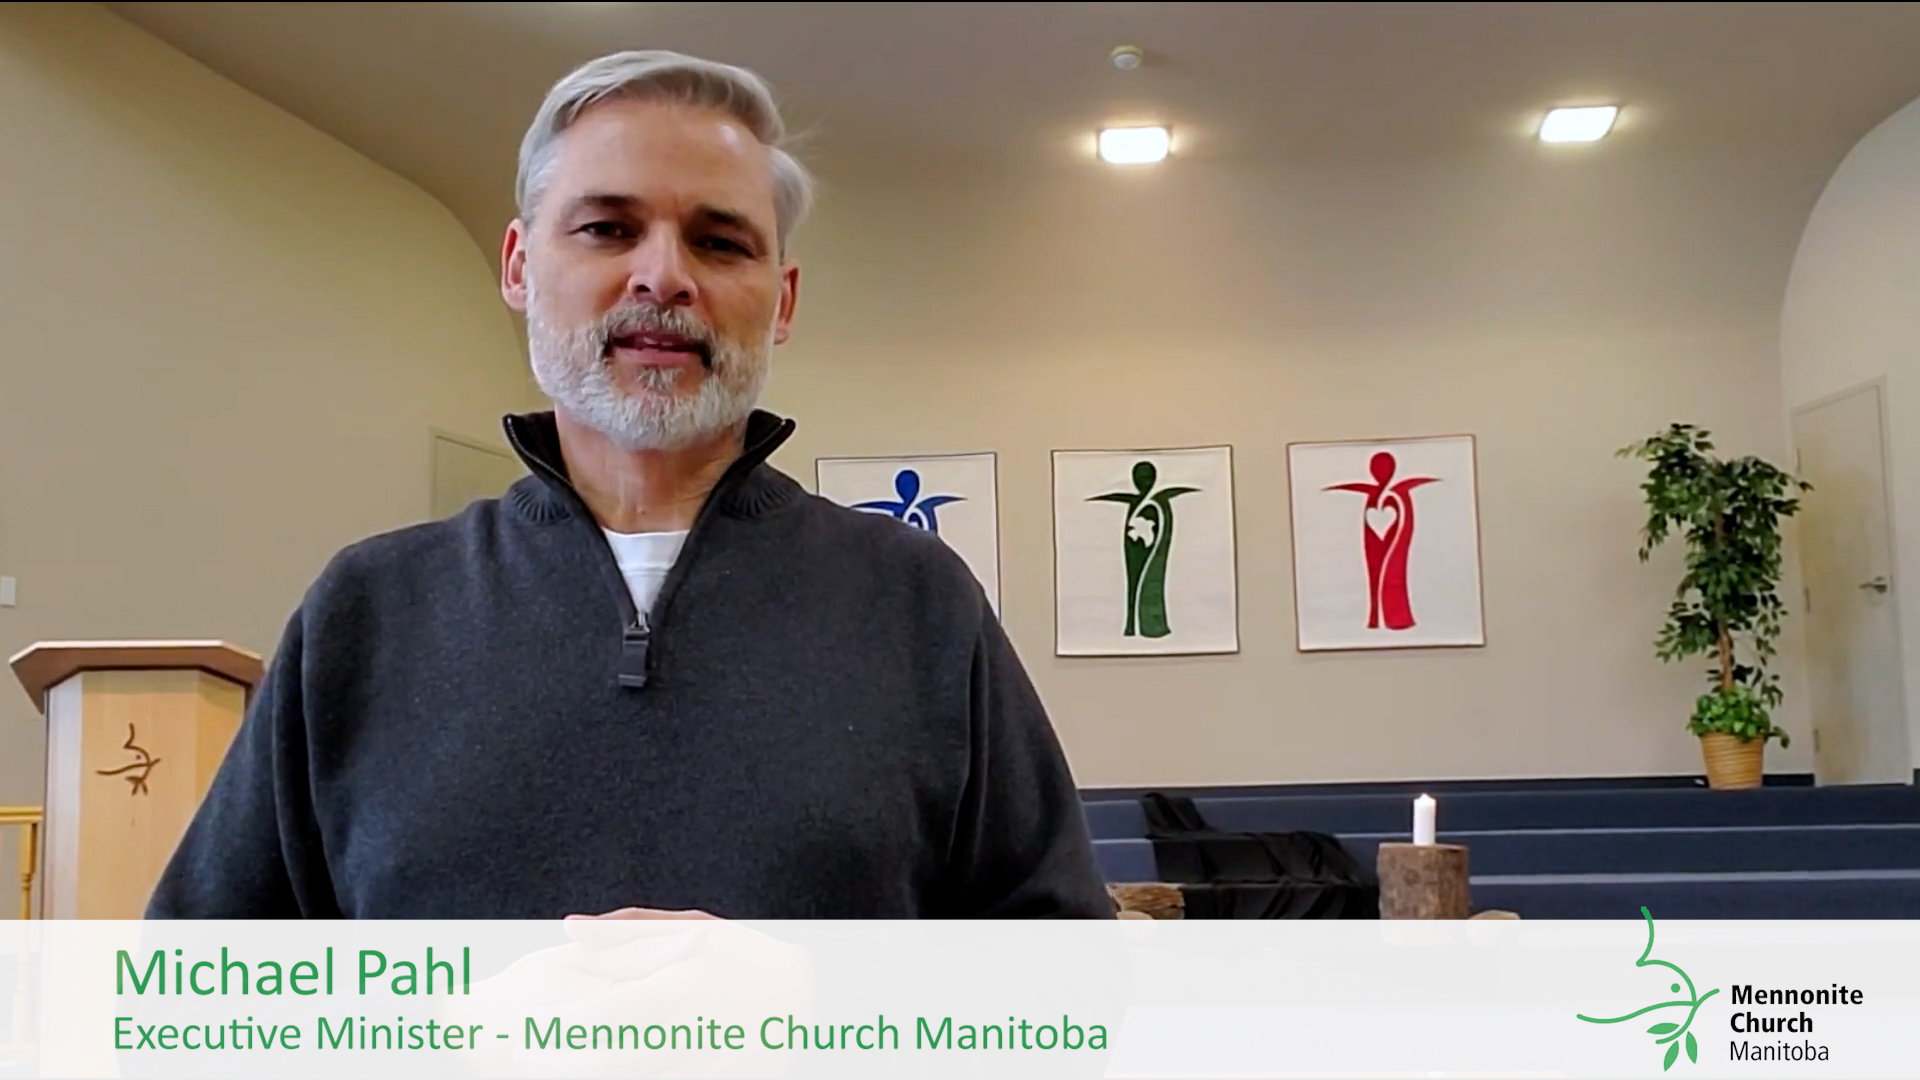 Michael Pahl greets MCM - Video